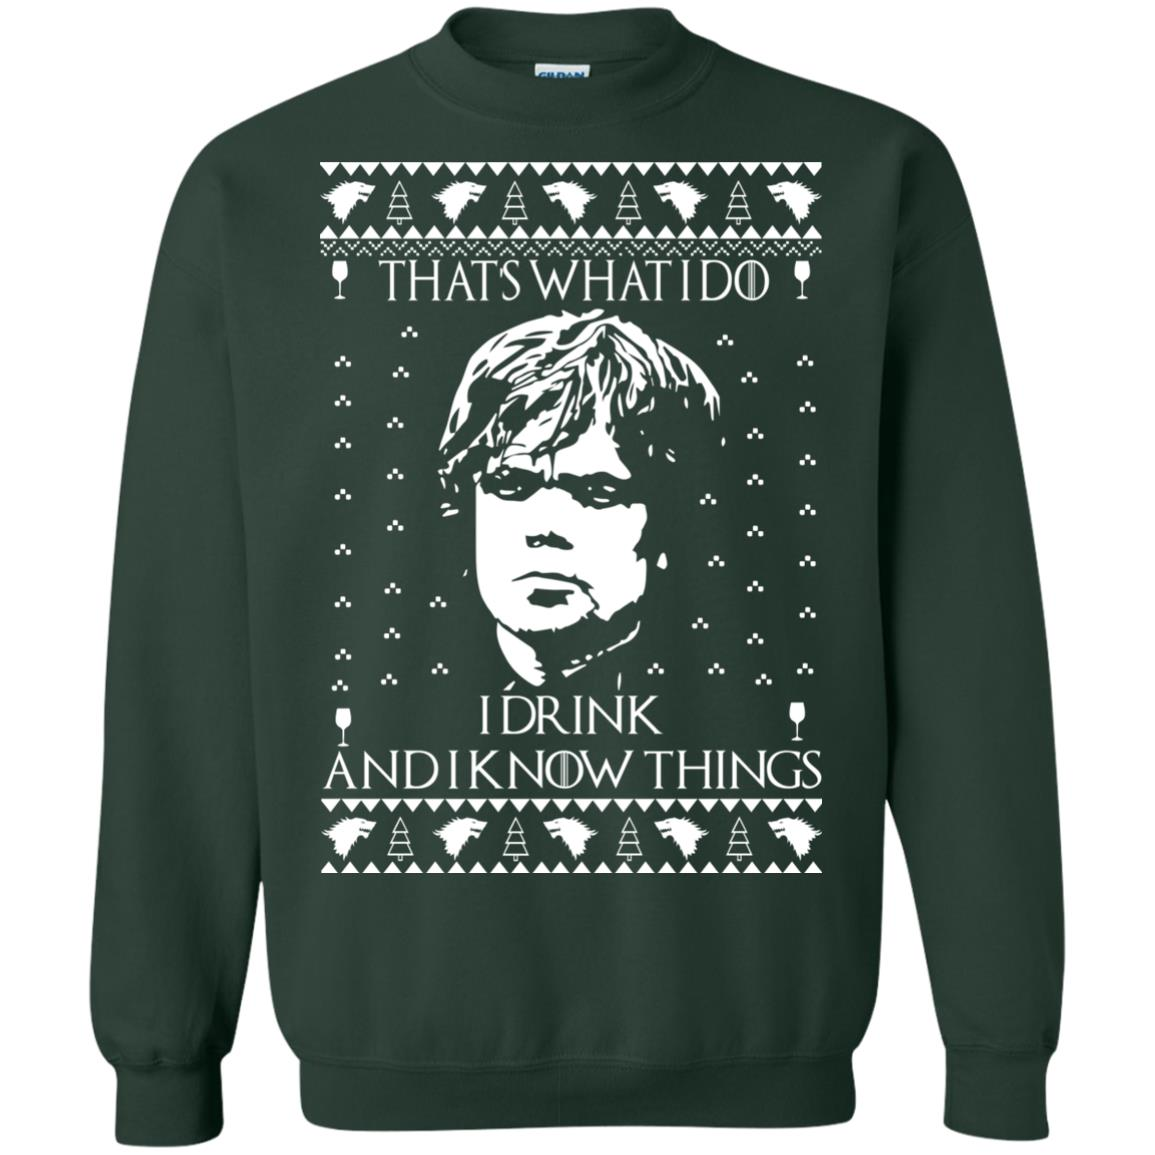 image 3010 - Tyrion Lannister I Drink and I Know Things Ugly Christmas Sweater, Shirt